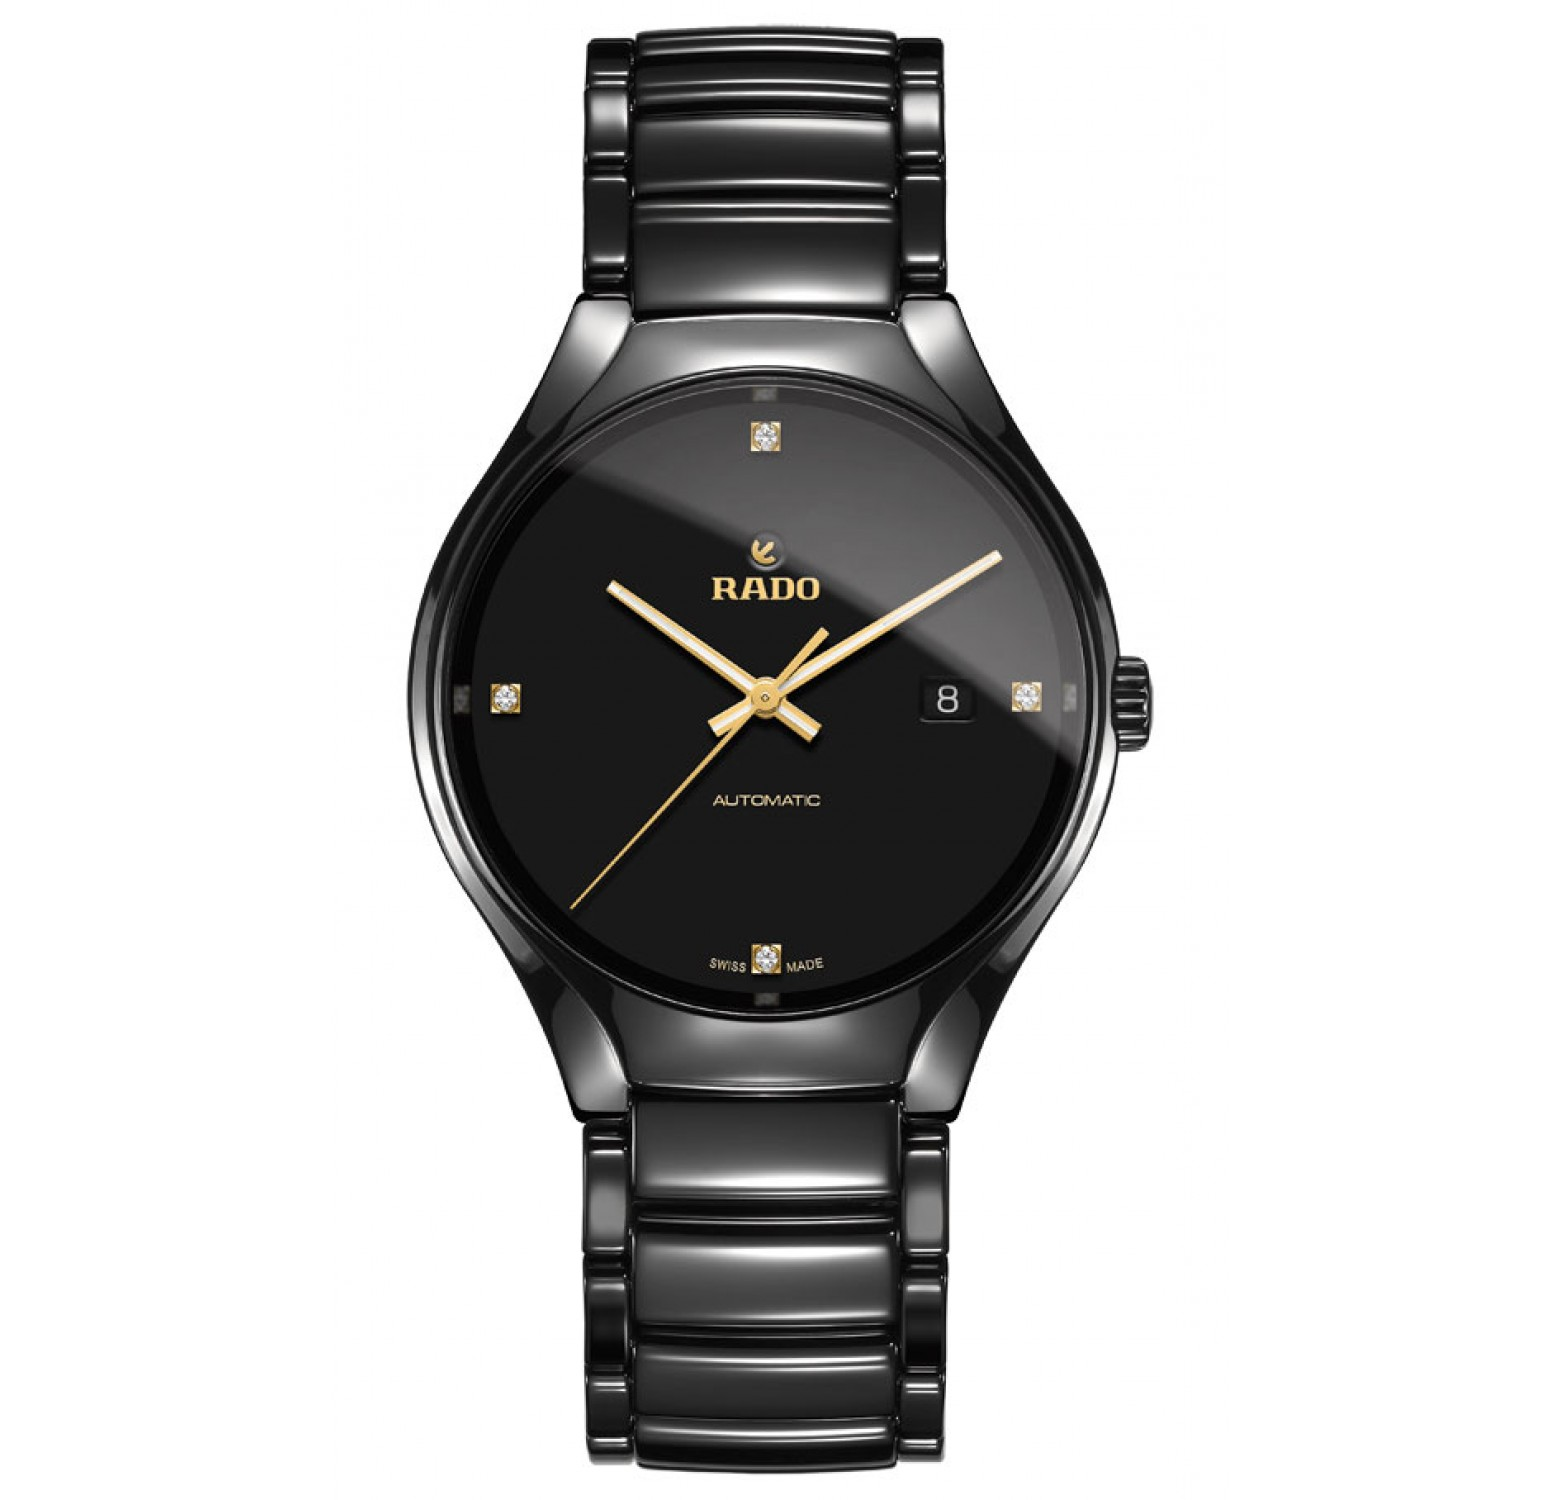 rado watches Rado watches : find top watch brands like michael kors, rolex, gucci, citizen, fossil, coach, omega, and more overstockcom - get 5% in rewards with club o.